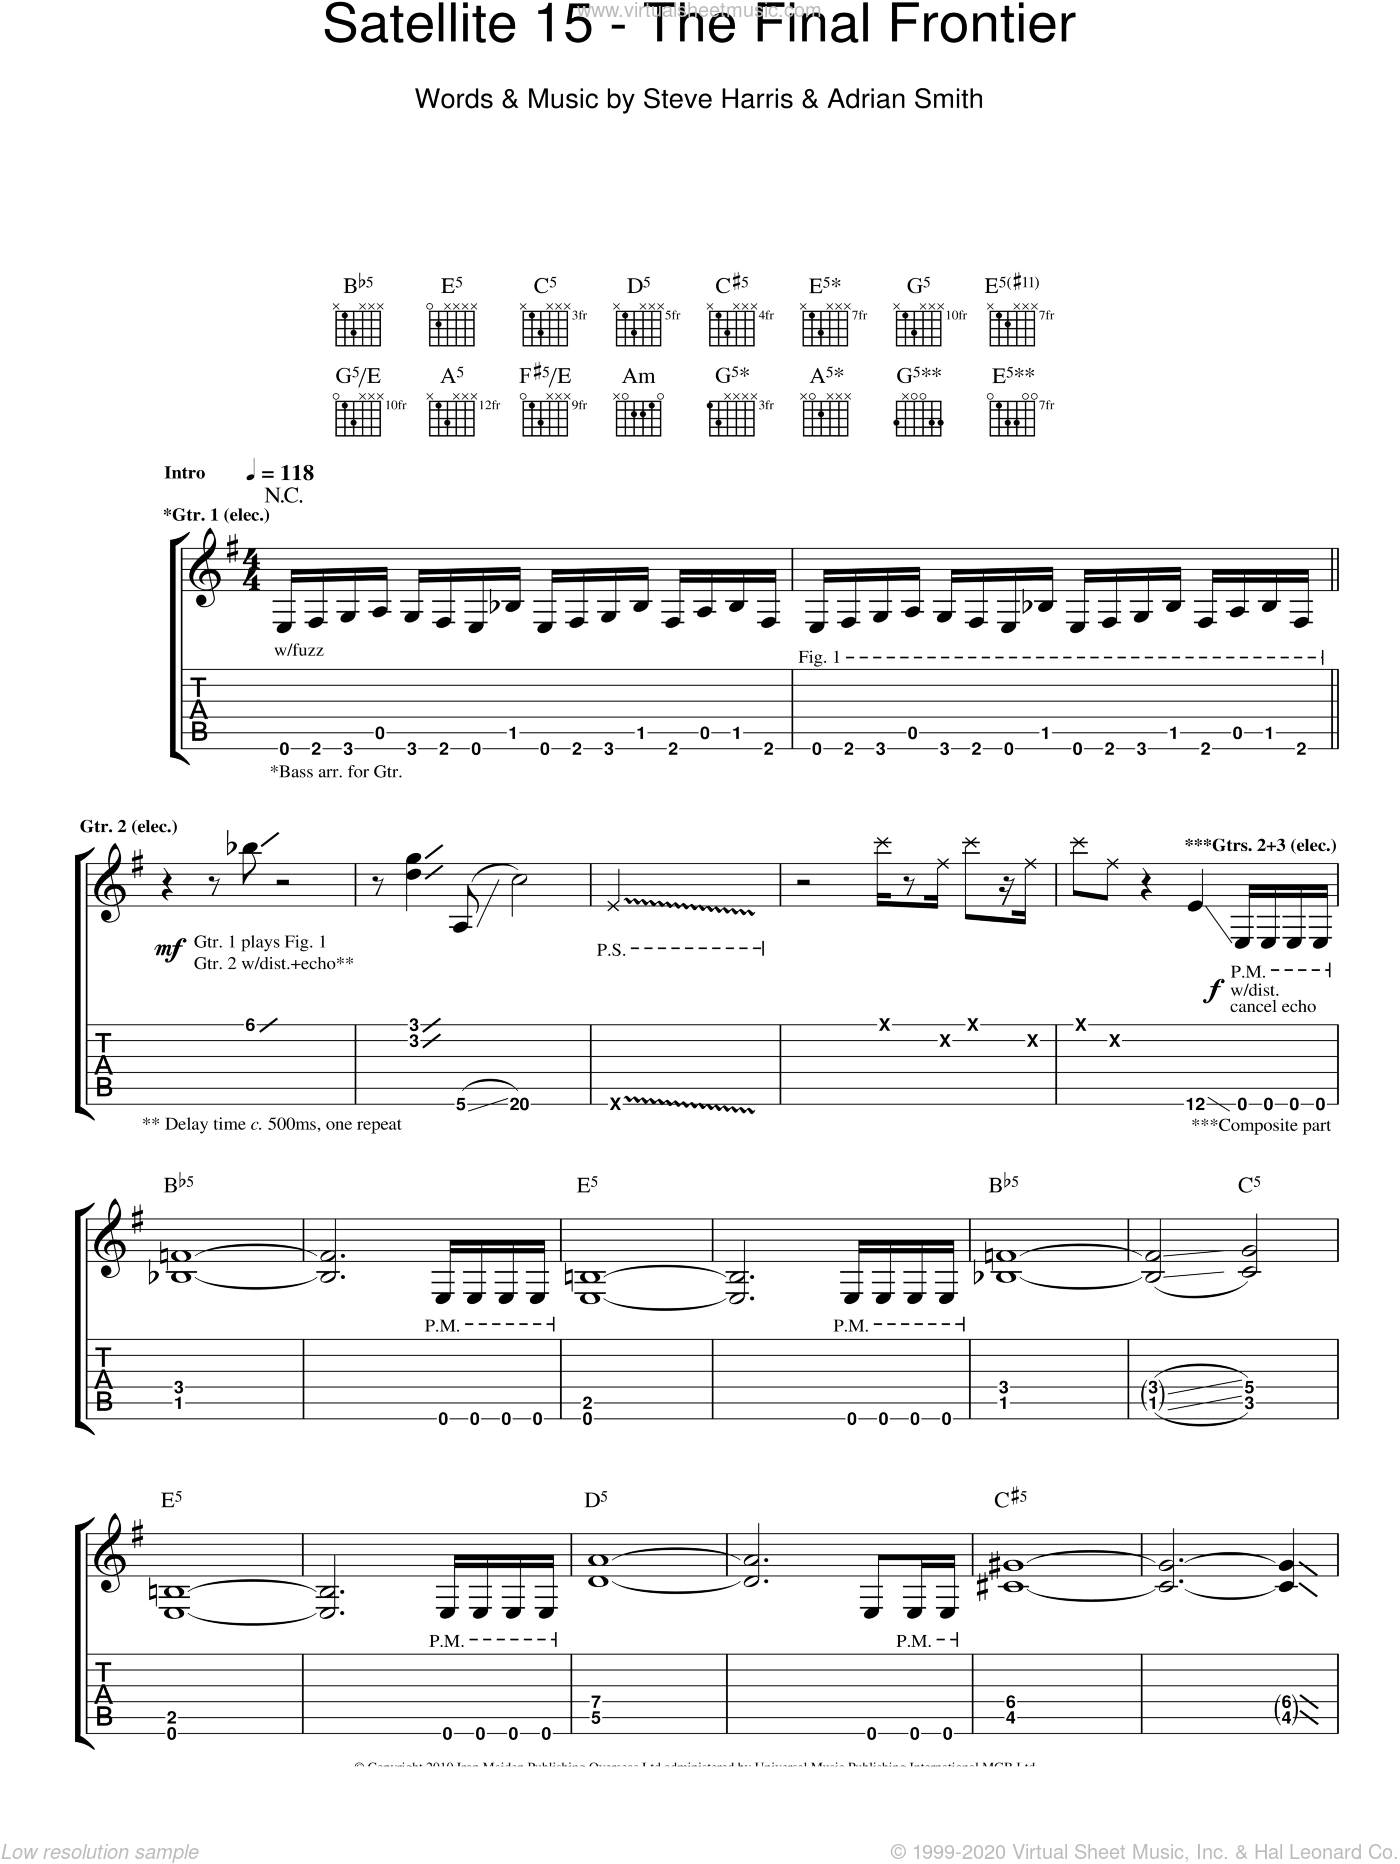 Satellite 15 - The Final Frontier sheet music for guitar (tablature) by Steve Harris